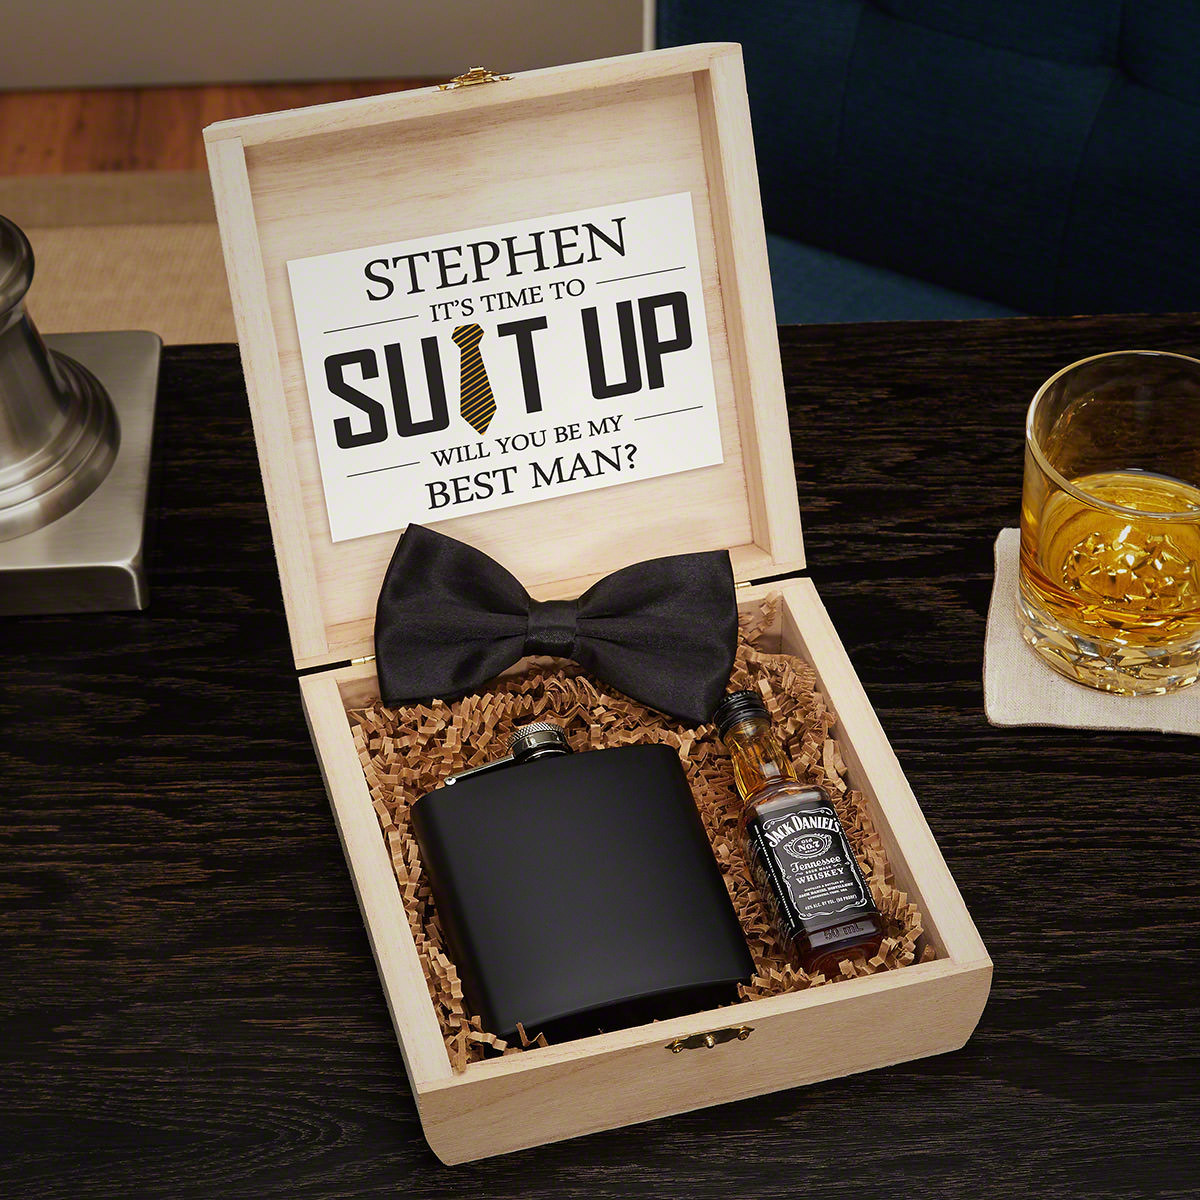 Best ideas about Groomsmen Gift Box Ideas . Save or Pin Personalized Groomsmen Gifts and Wooden Crate Set Now.